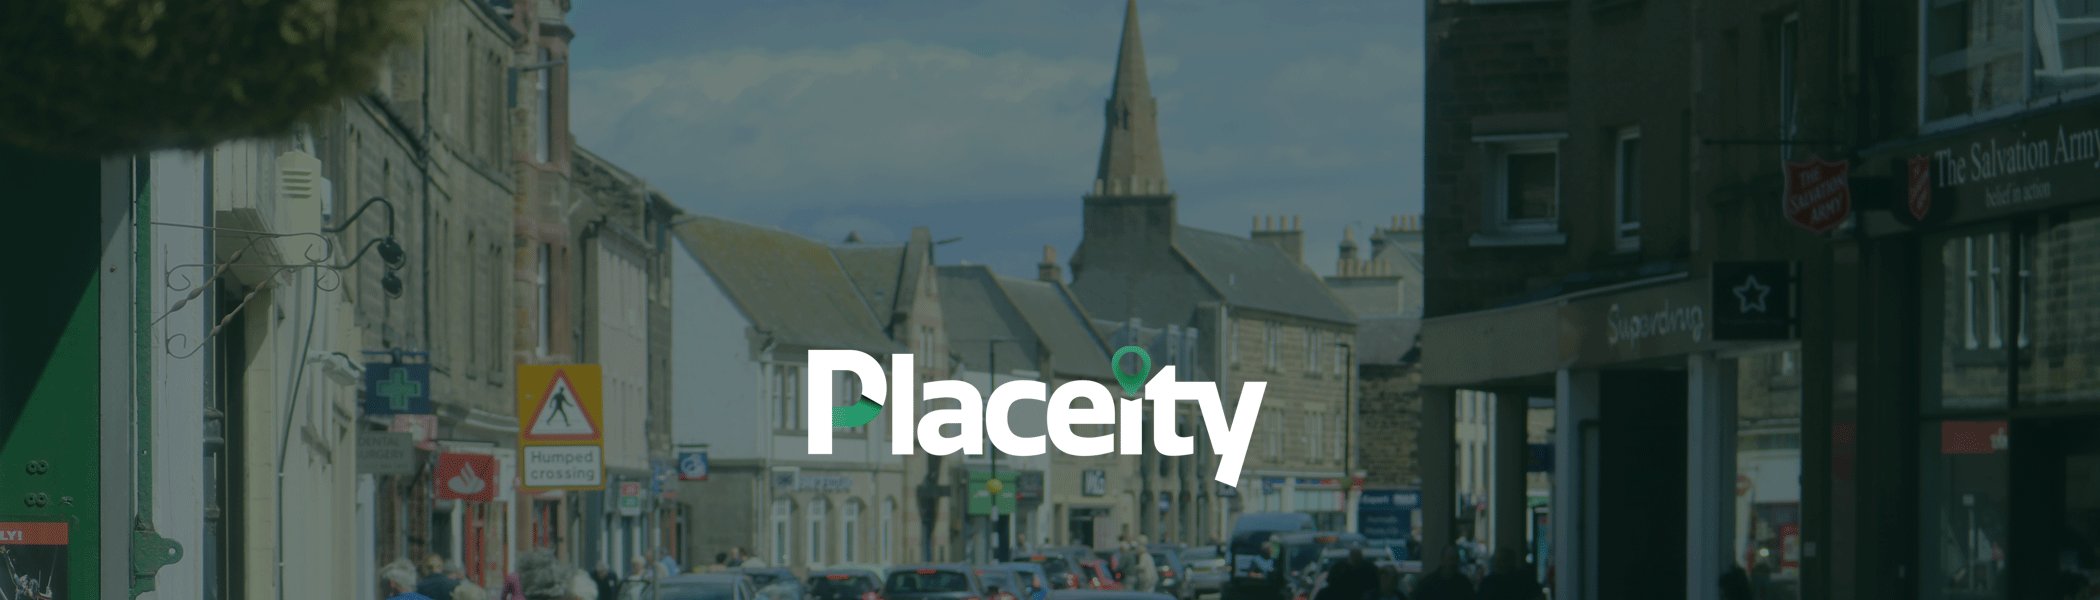 Placeity launches in Dalkeith